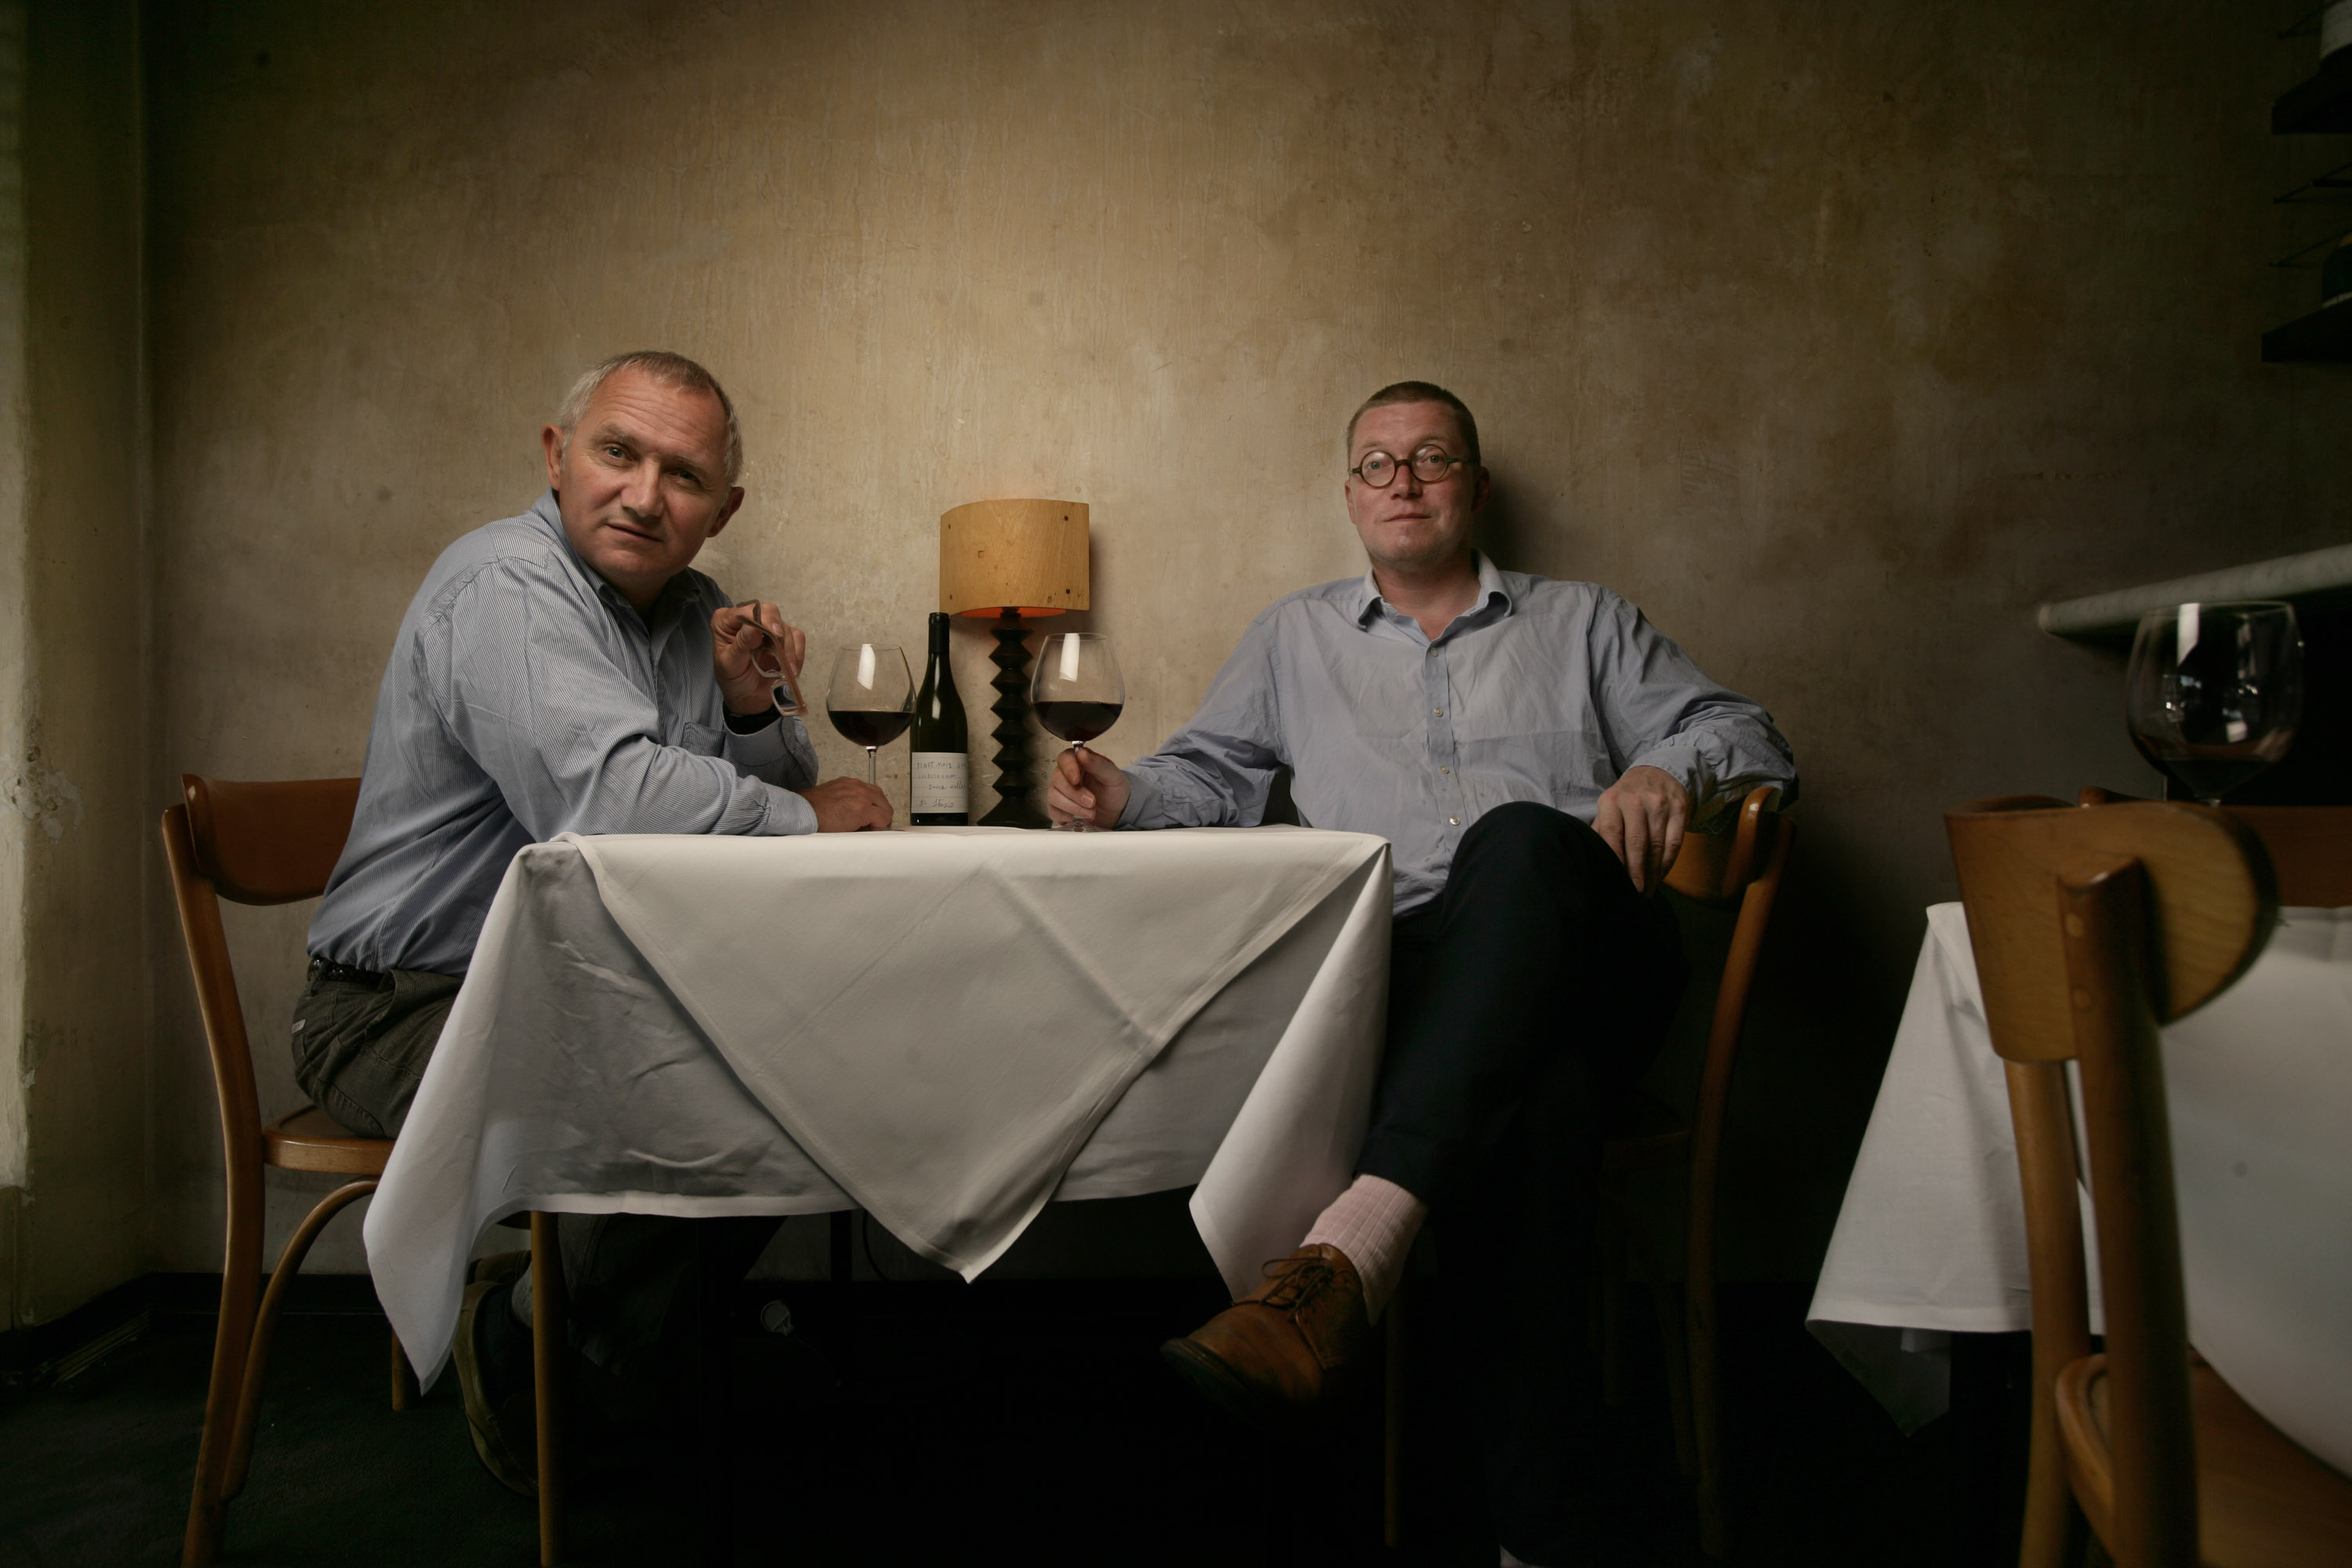 Fergus Henderson (glasses) and Trevor Gulliver at Cafe Di Stasio on 29th August,